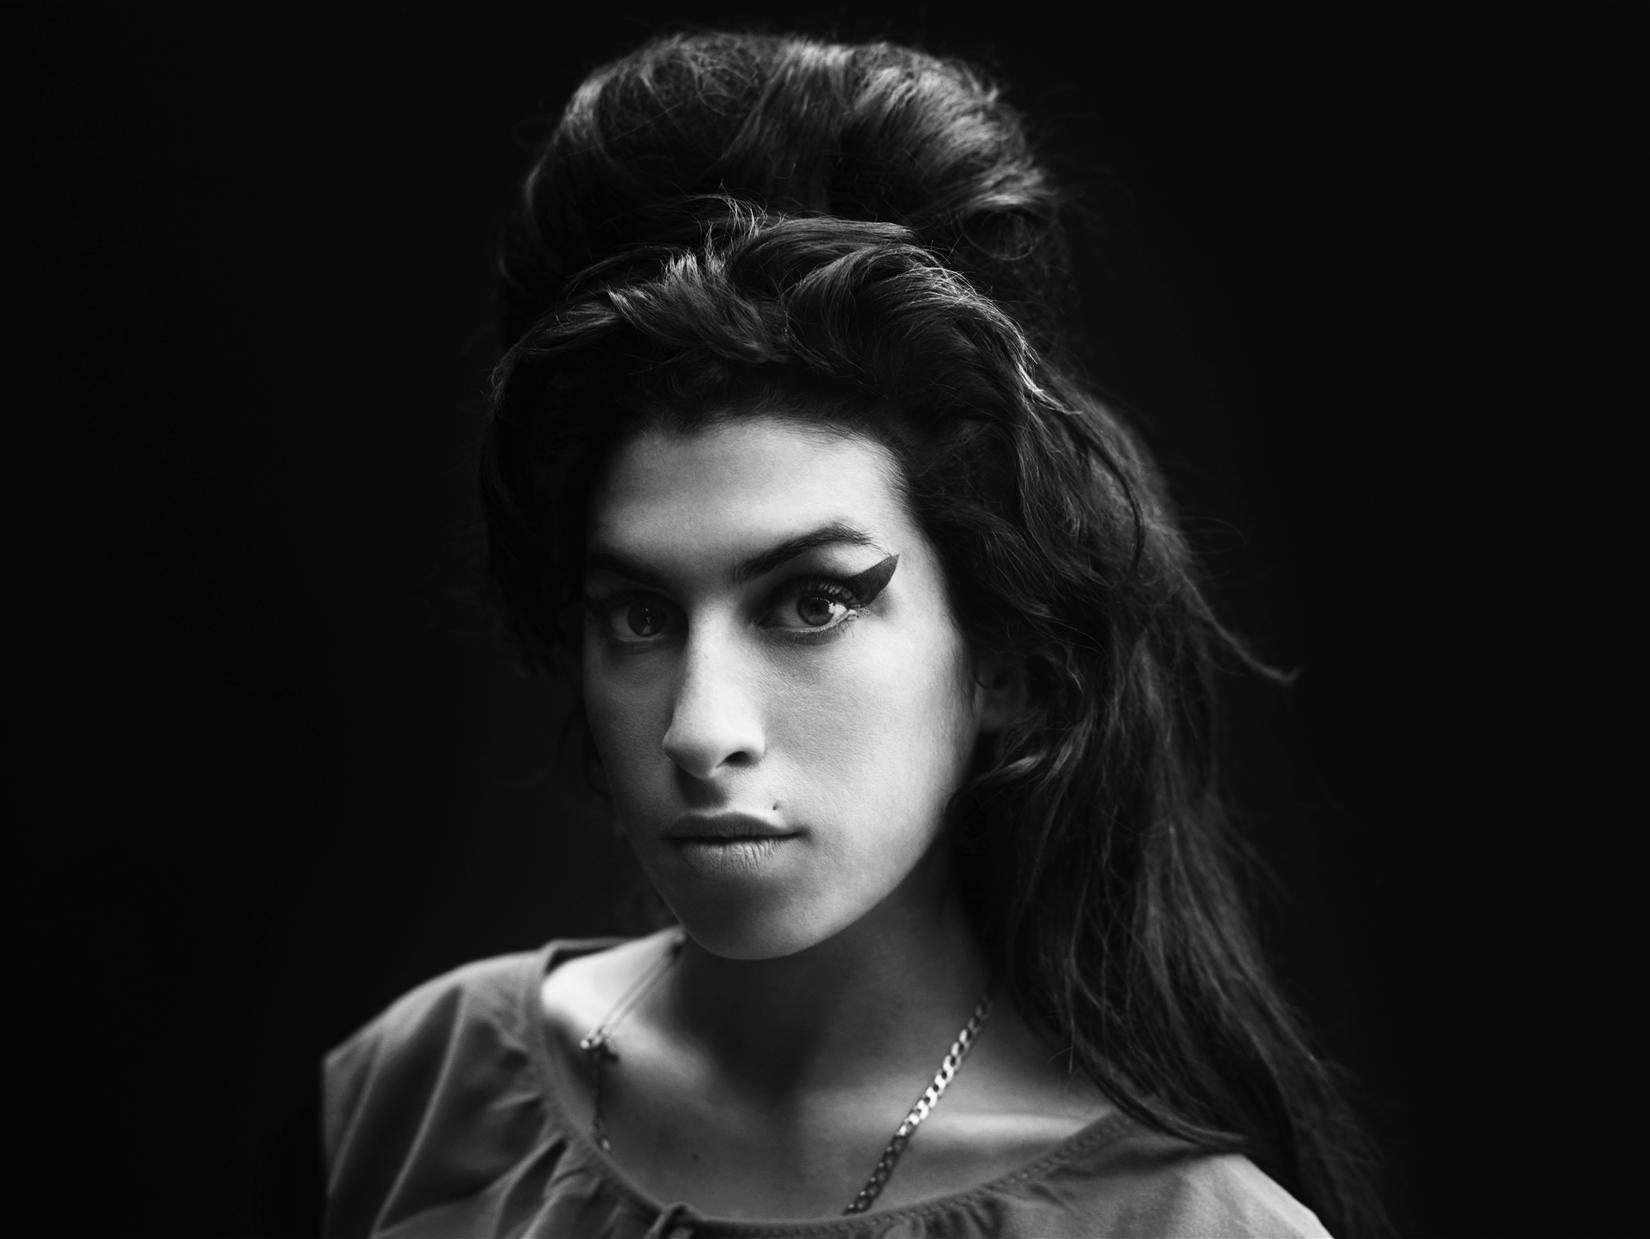 Watch previously unseen footage of Amy Winehouse recording with Mark Ronson